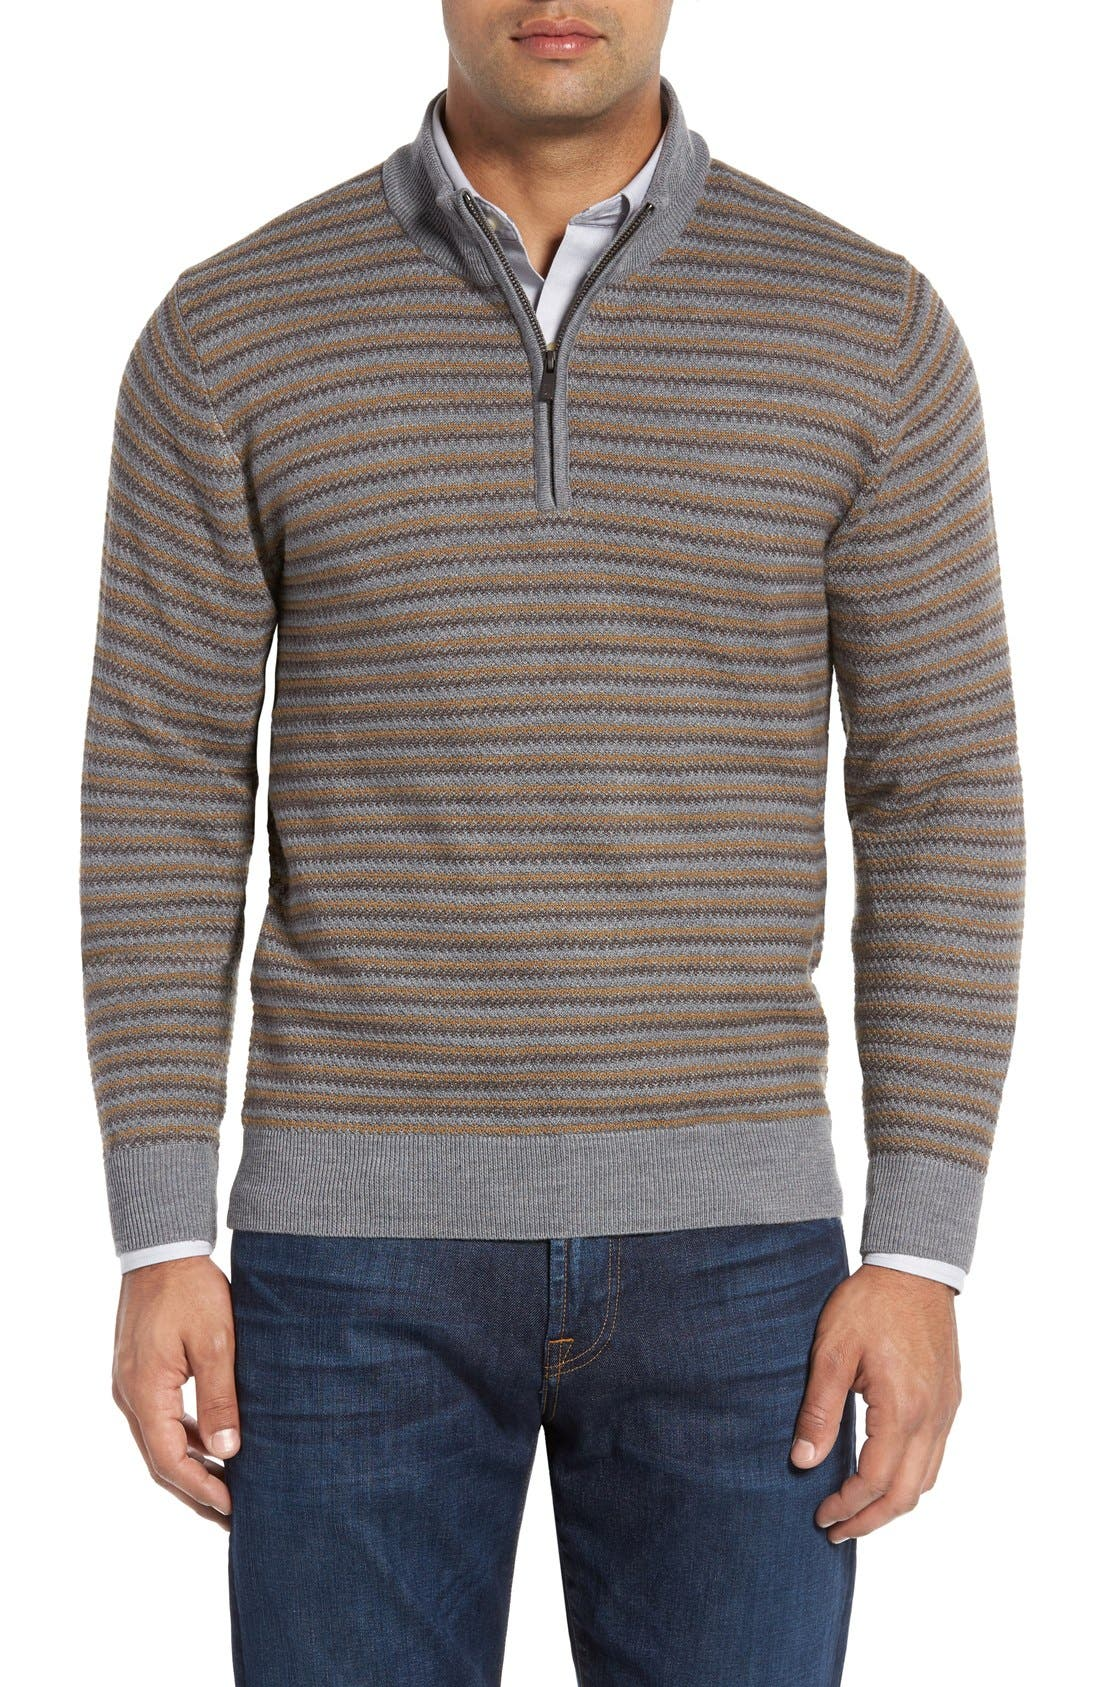 'Douglas Range' Quarter Zip Stripe Wool Blend Sweater,                             Main thumbnail 1, color,                             Brown/ Multi